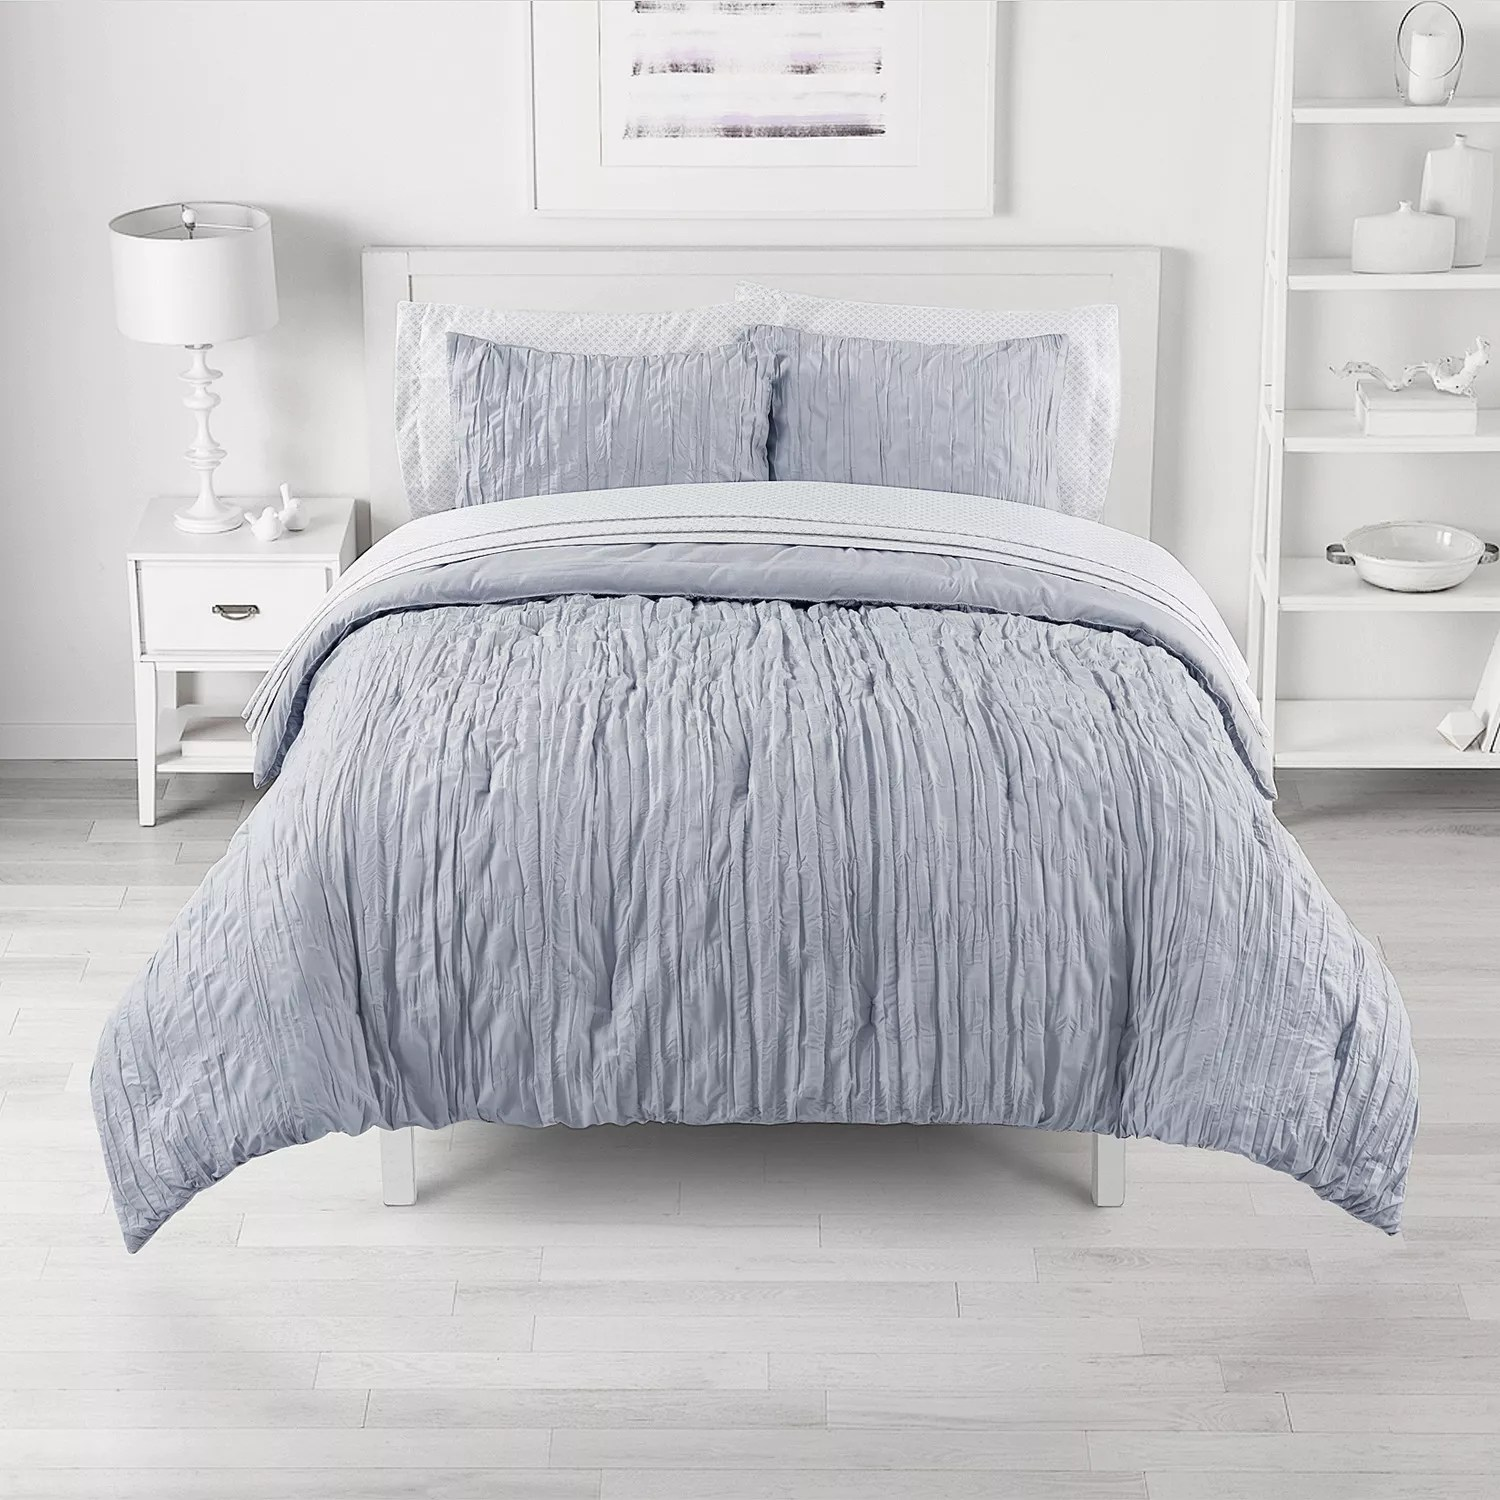 king grey comforters bedding bed